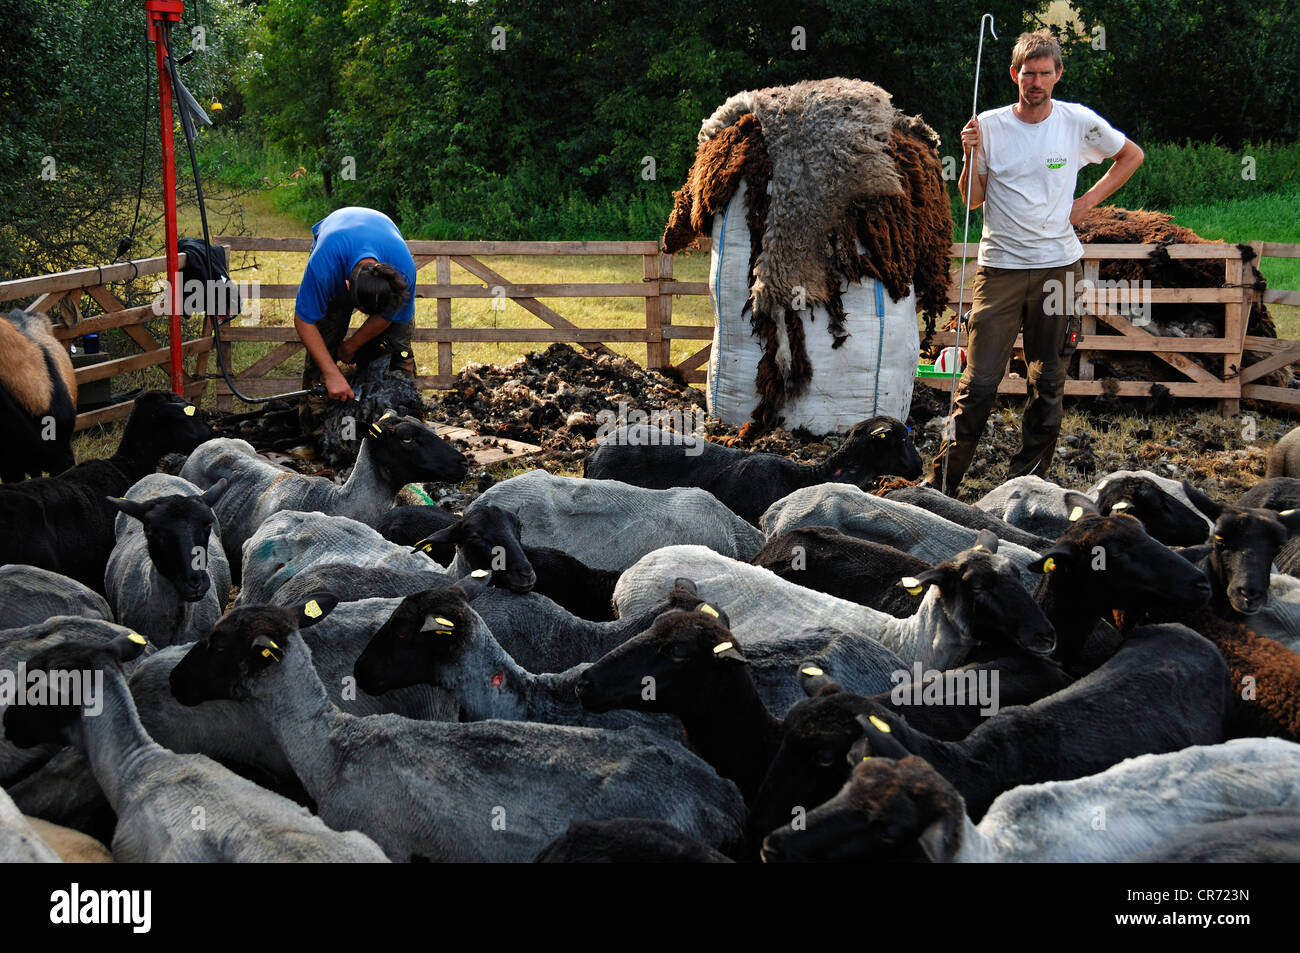 Sheep shearer and assistant holding a crook, freshly shorn sheep at the front and a bag with sheep's wool in - Stock Image